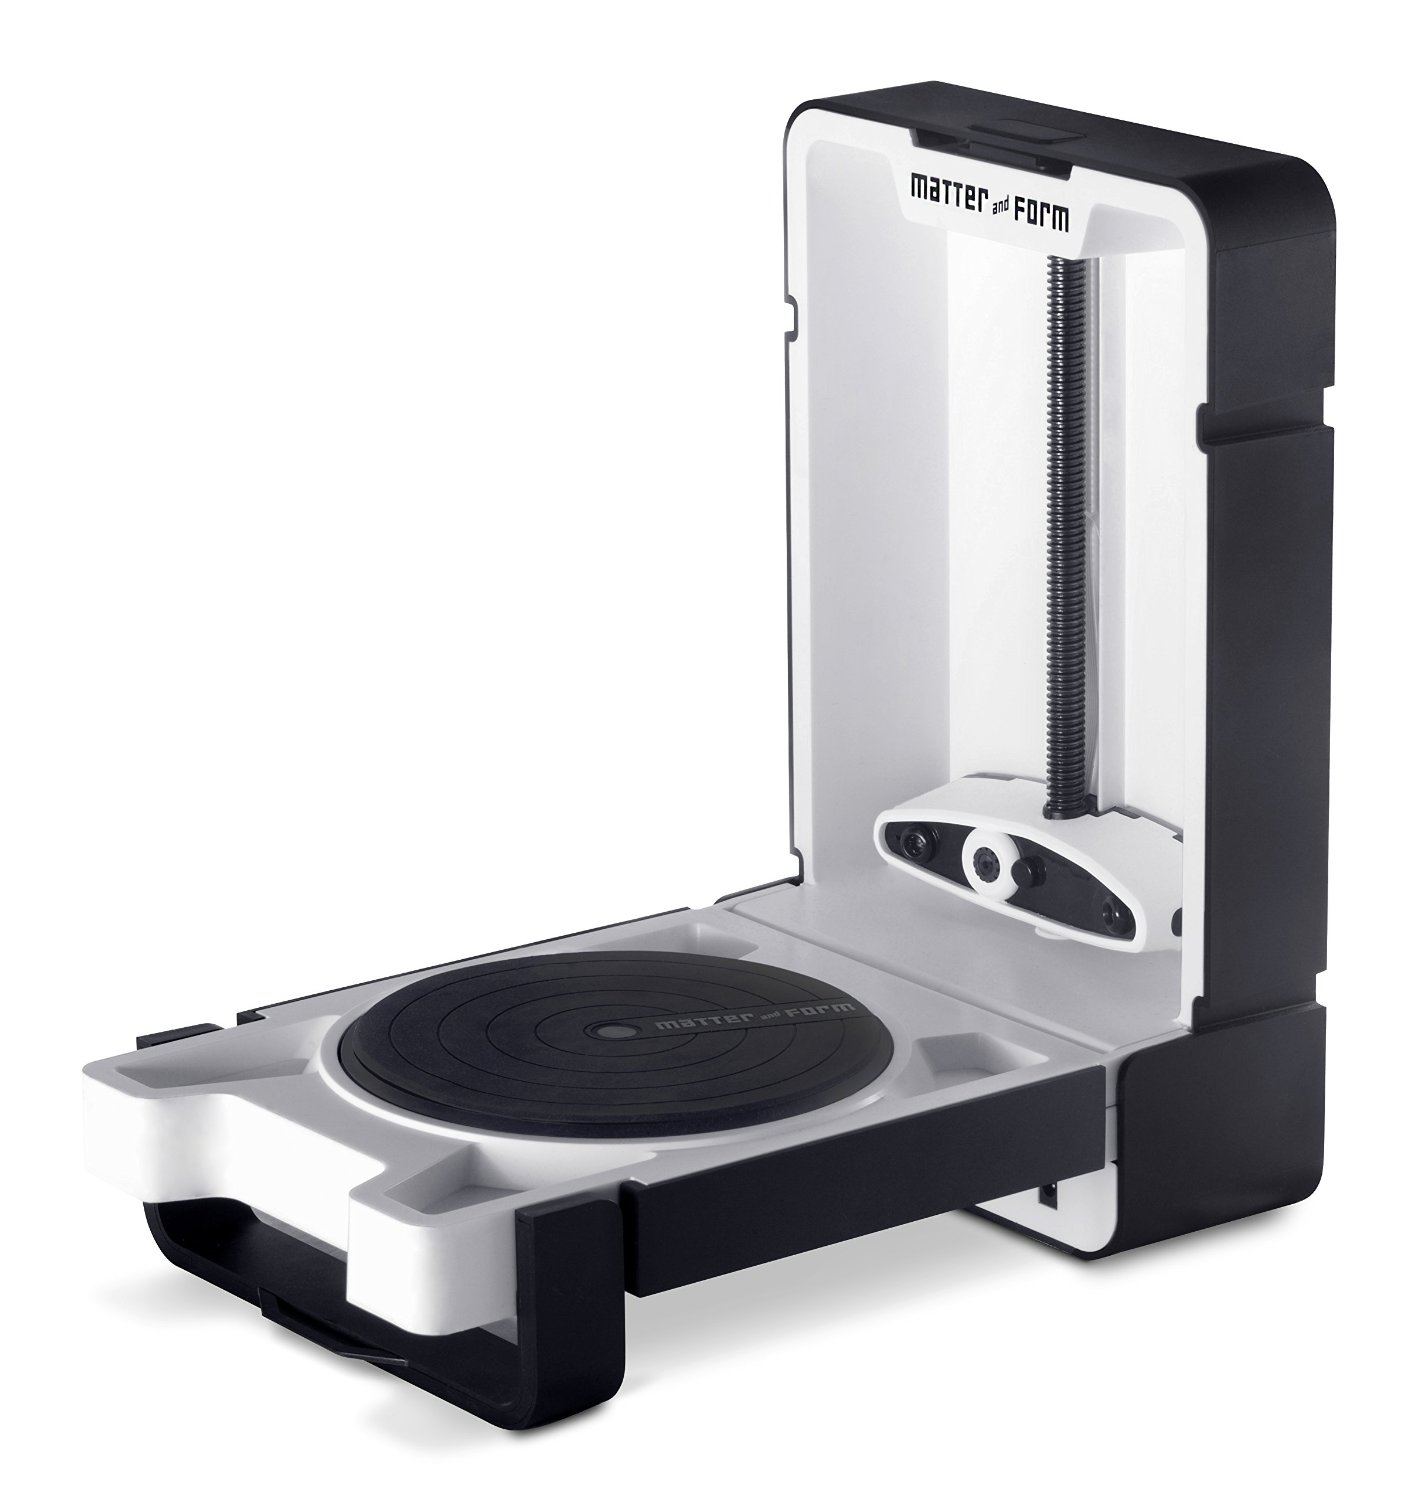 Matter and Form 3D Scanner Review - 3D Engineer